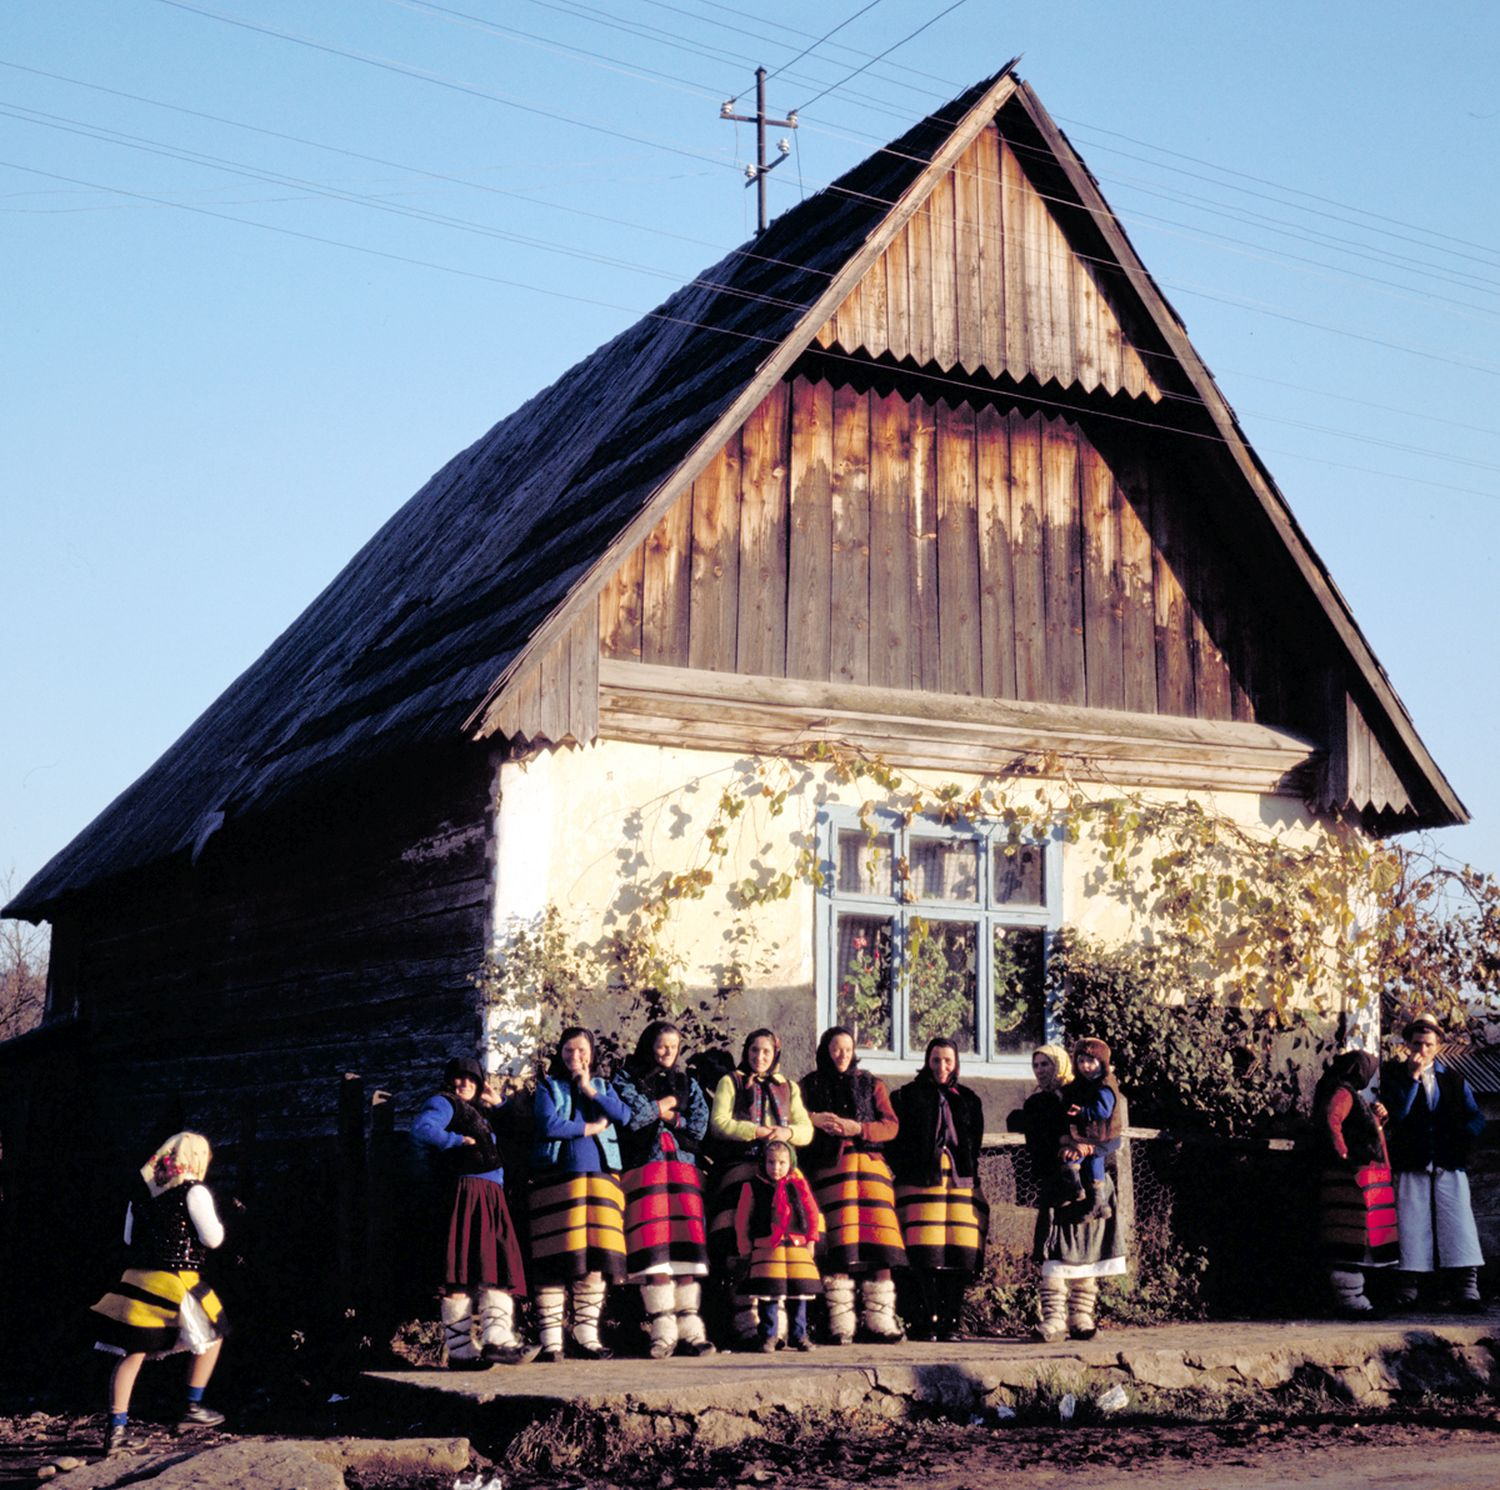 Péter Korniss: Sunday, in front of the Old House